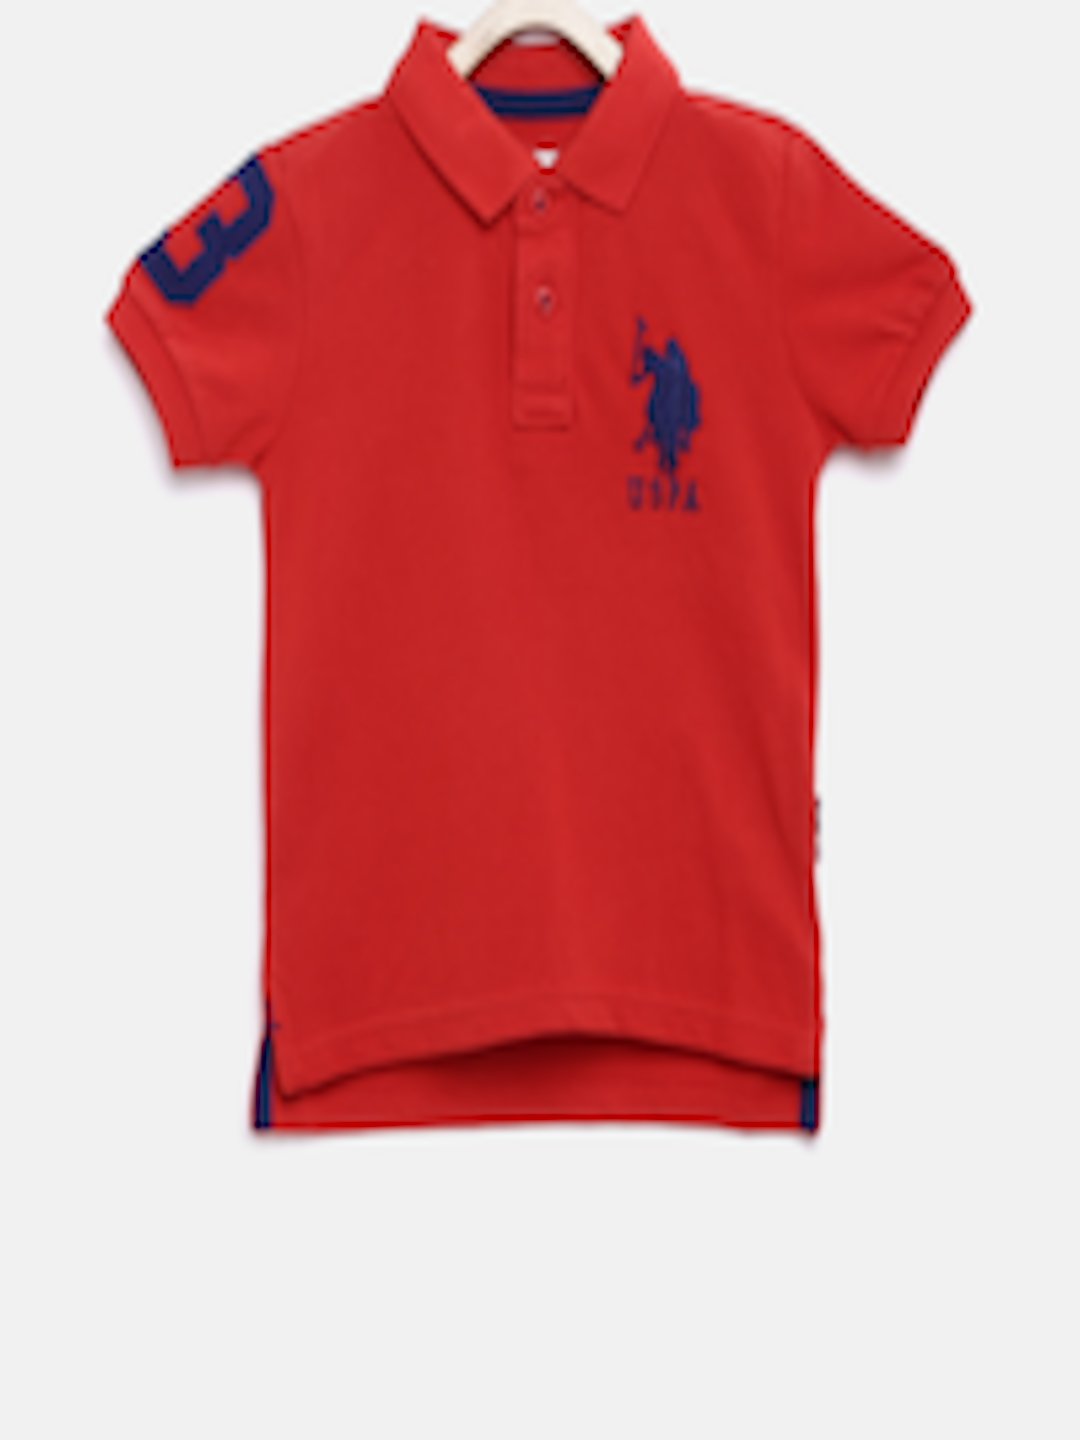 Us Polo Assn Shirts For Women